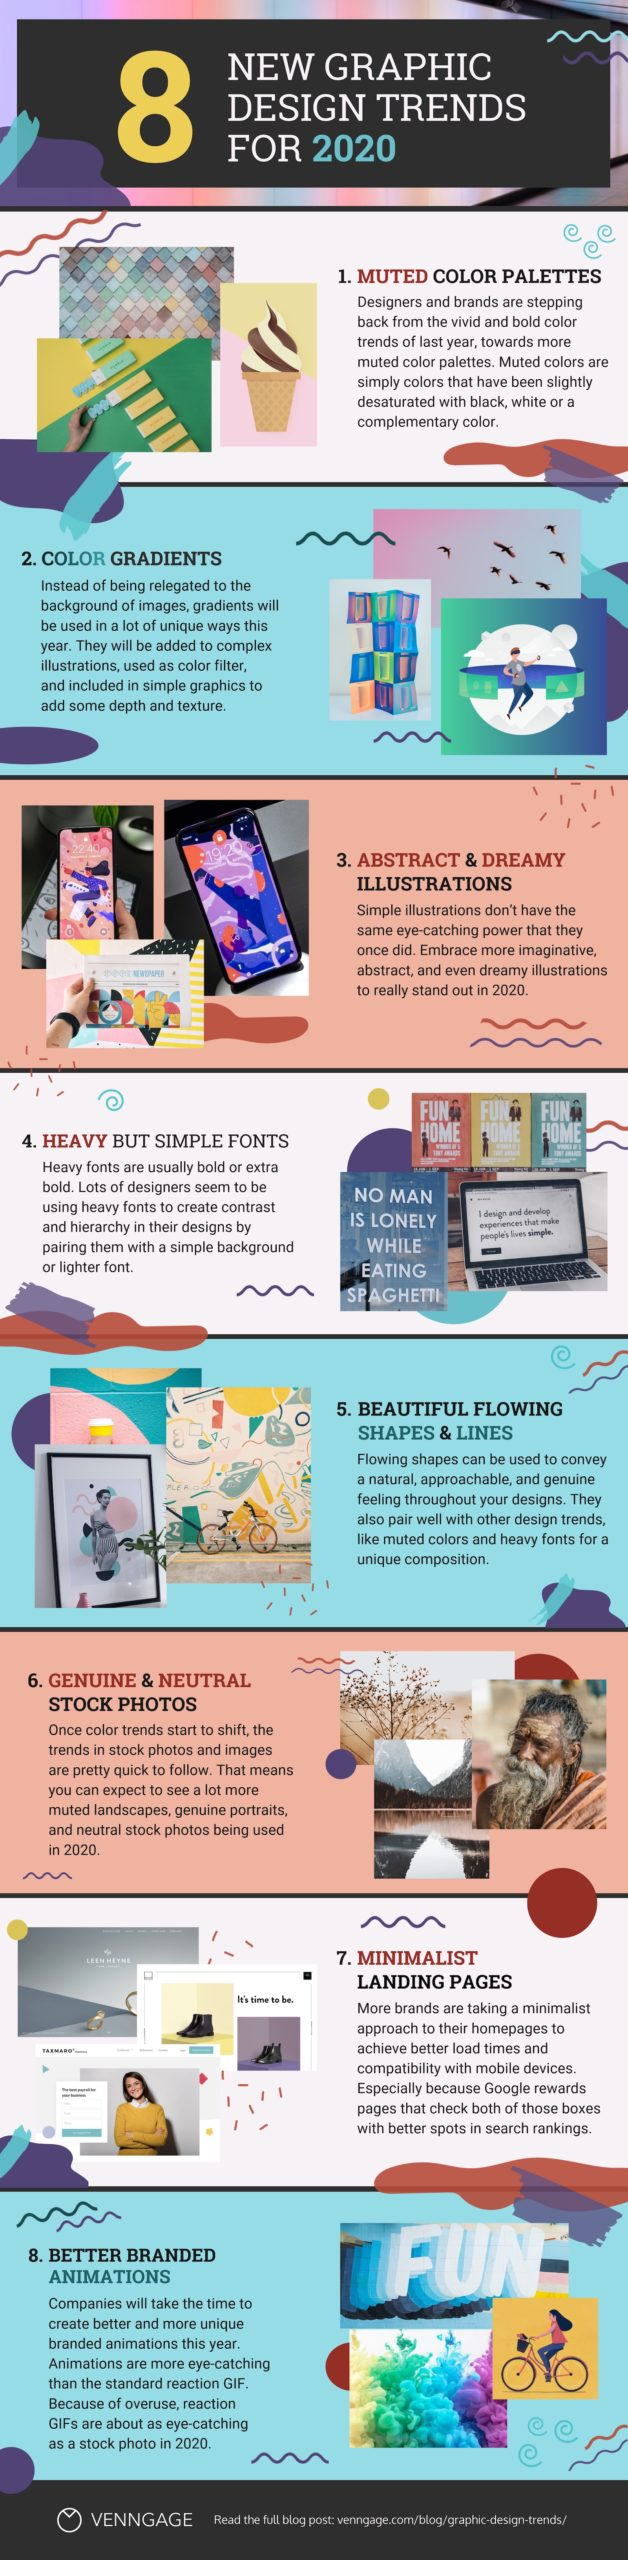 8 Biggest Graphic Design Trends for 2020 Infographic Image